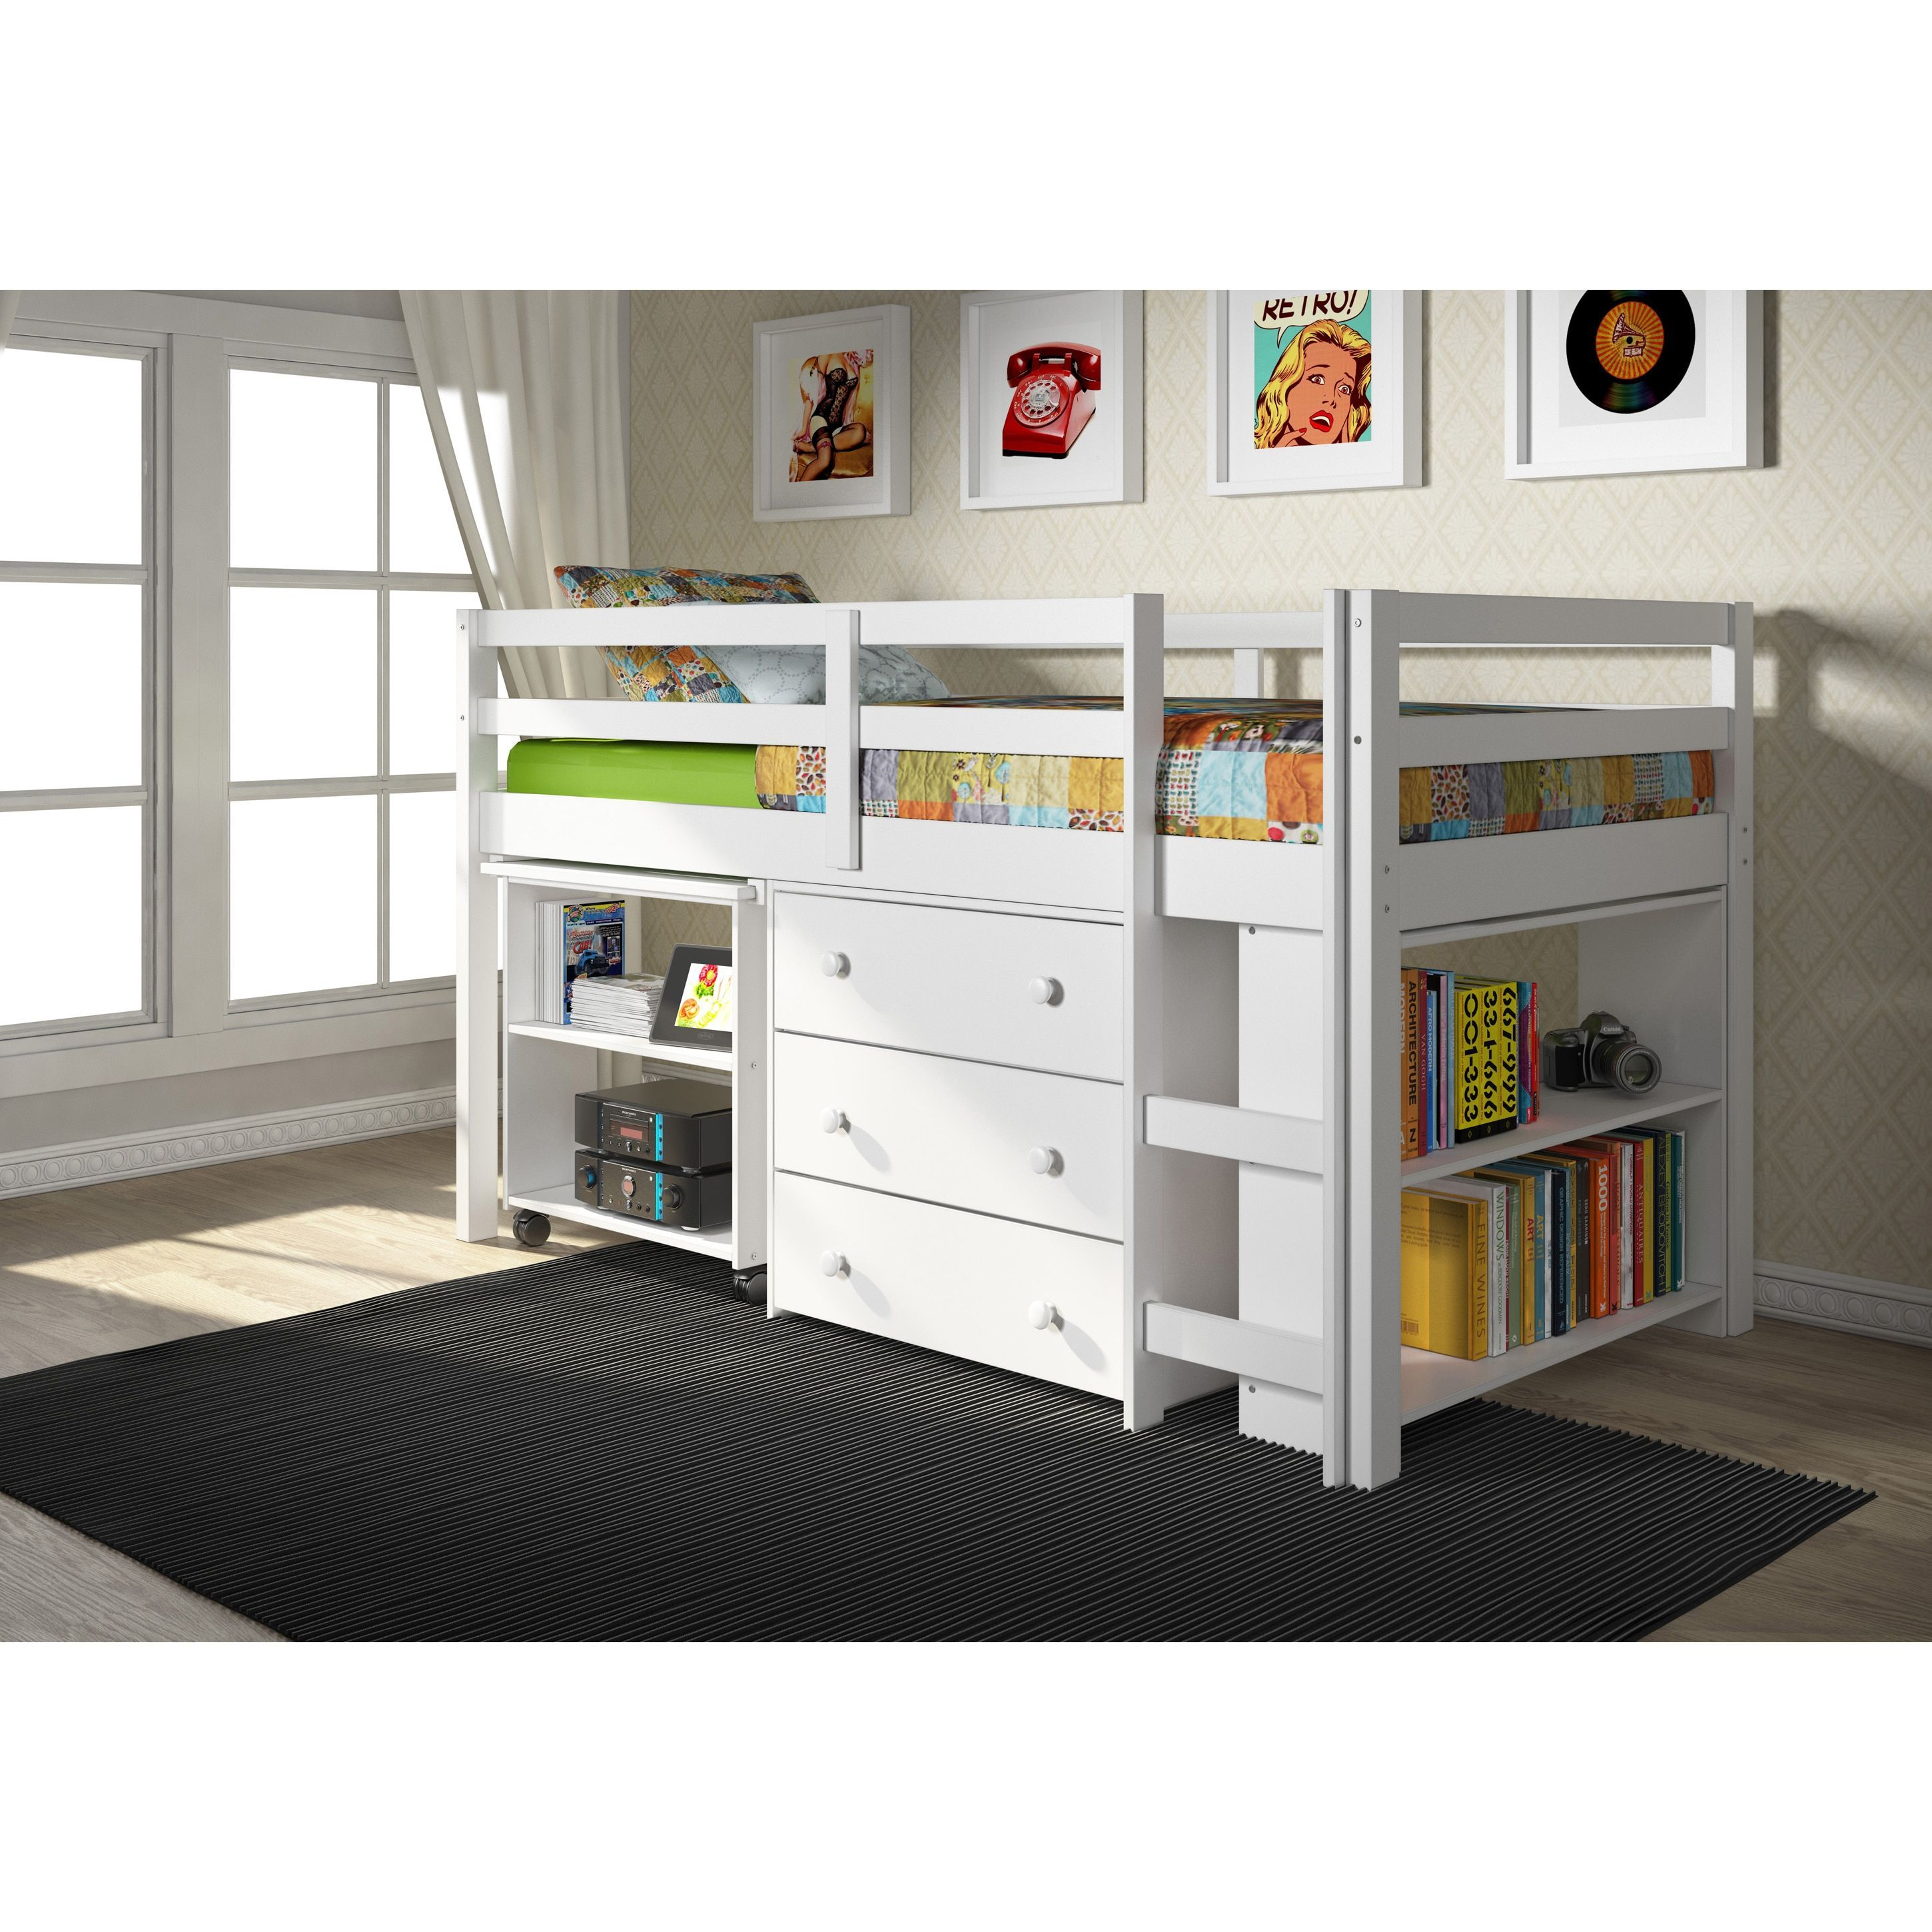 Junior loft bed with stairs  Donco Kids Low Study Brazilian Pine Loft Desk Twin Bed with Chest